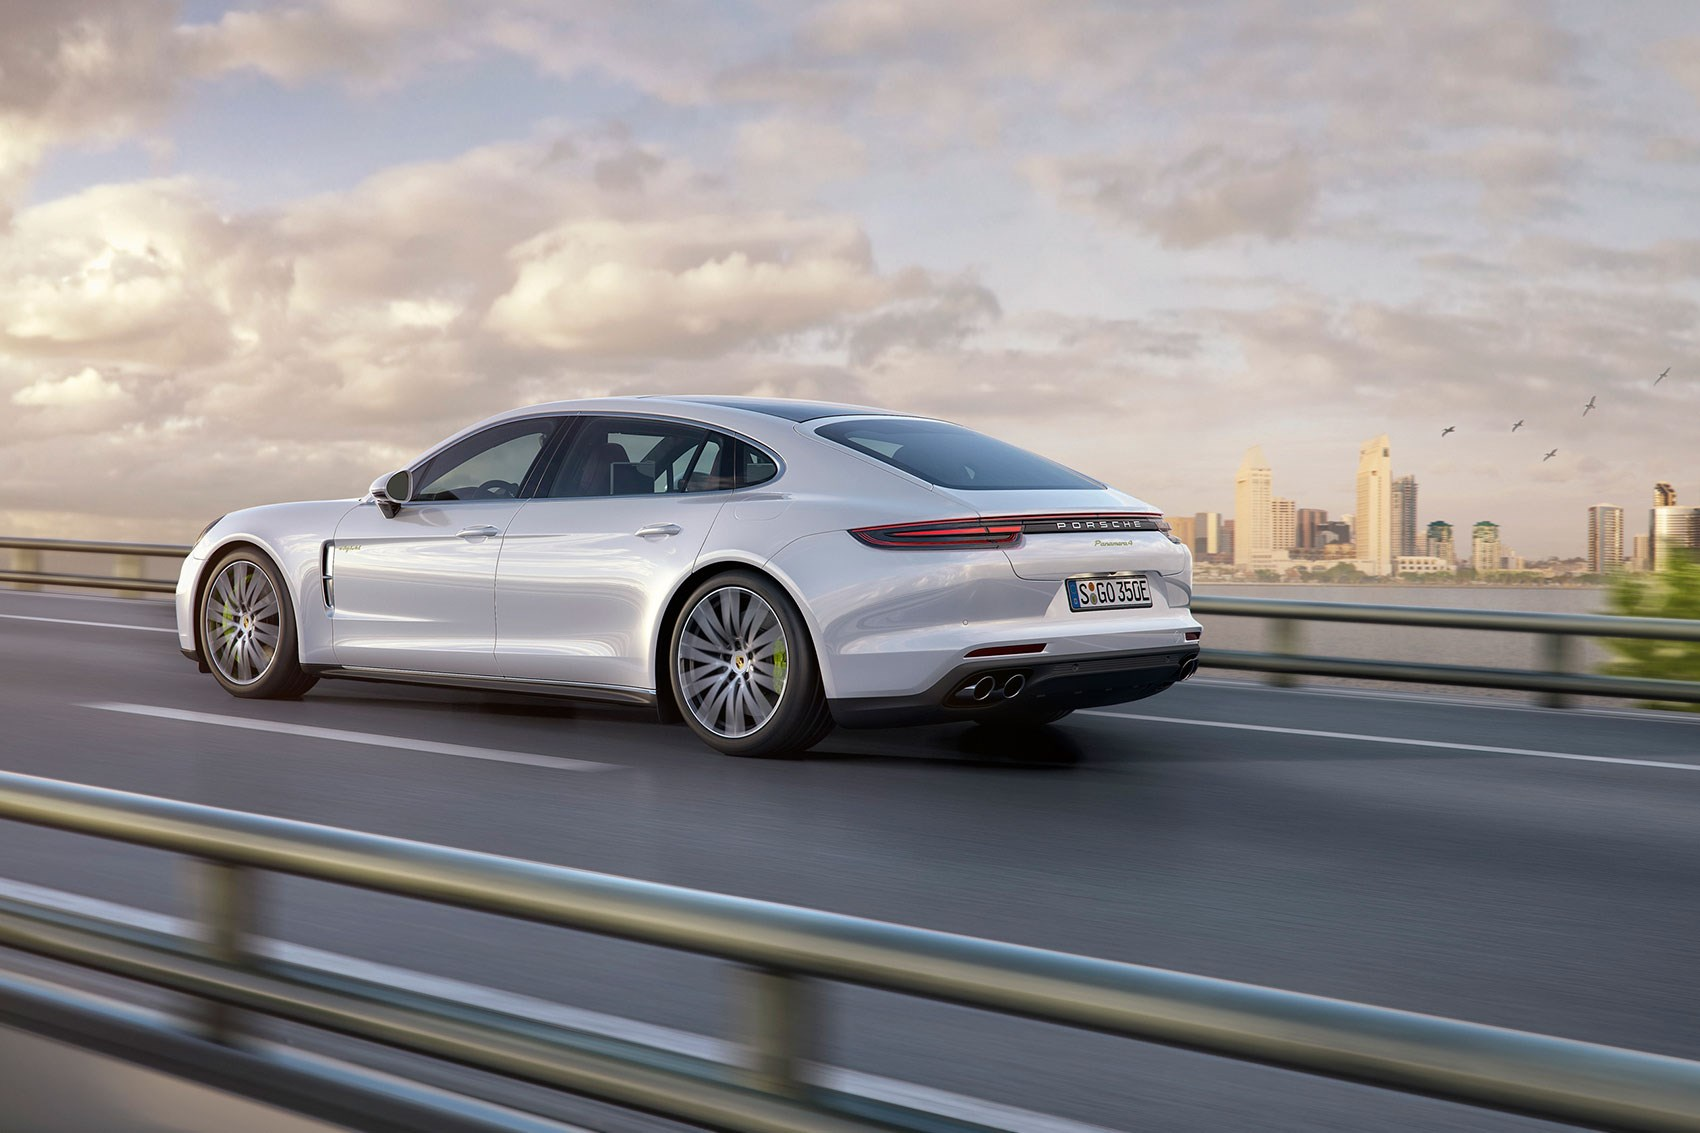 Prices Specs And Review We Test The New 2018 Porsche Panamera Executive Lwb